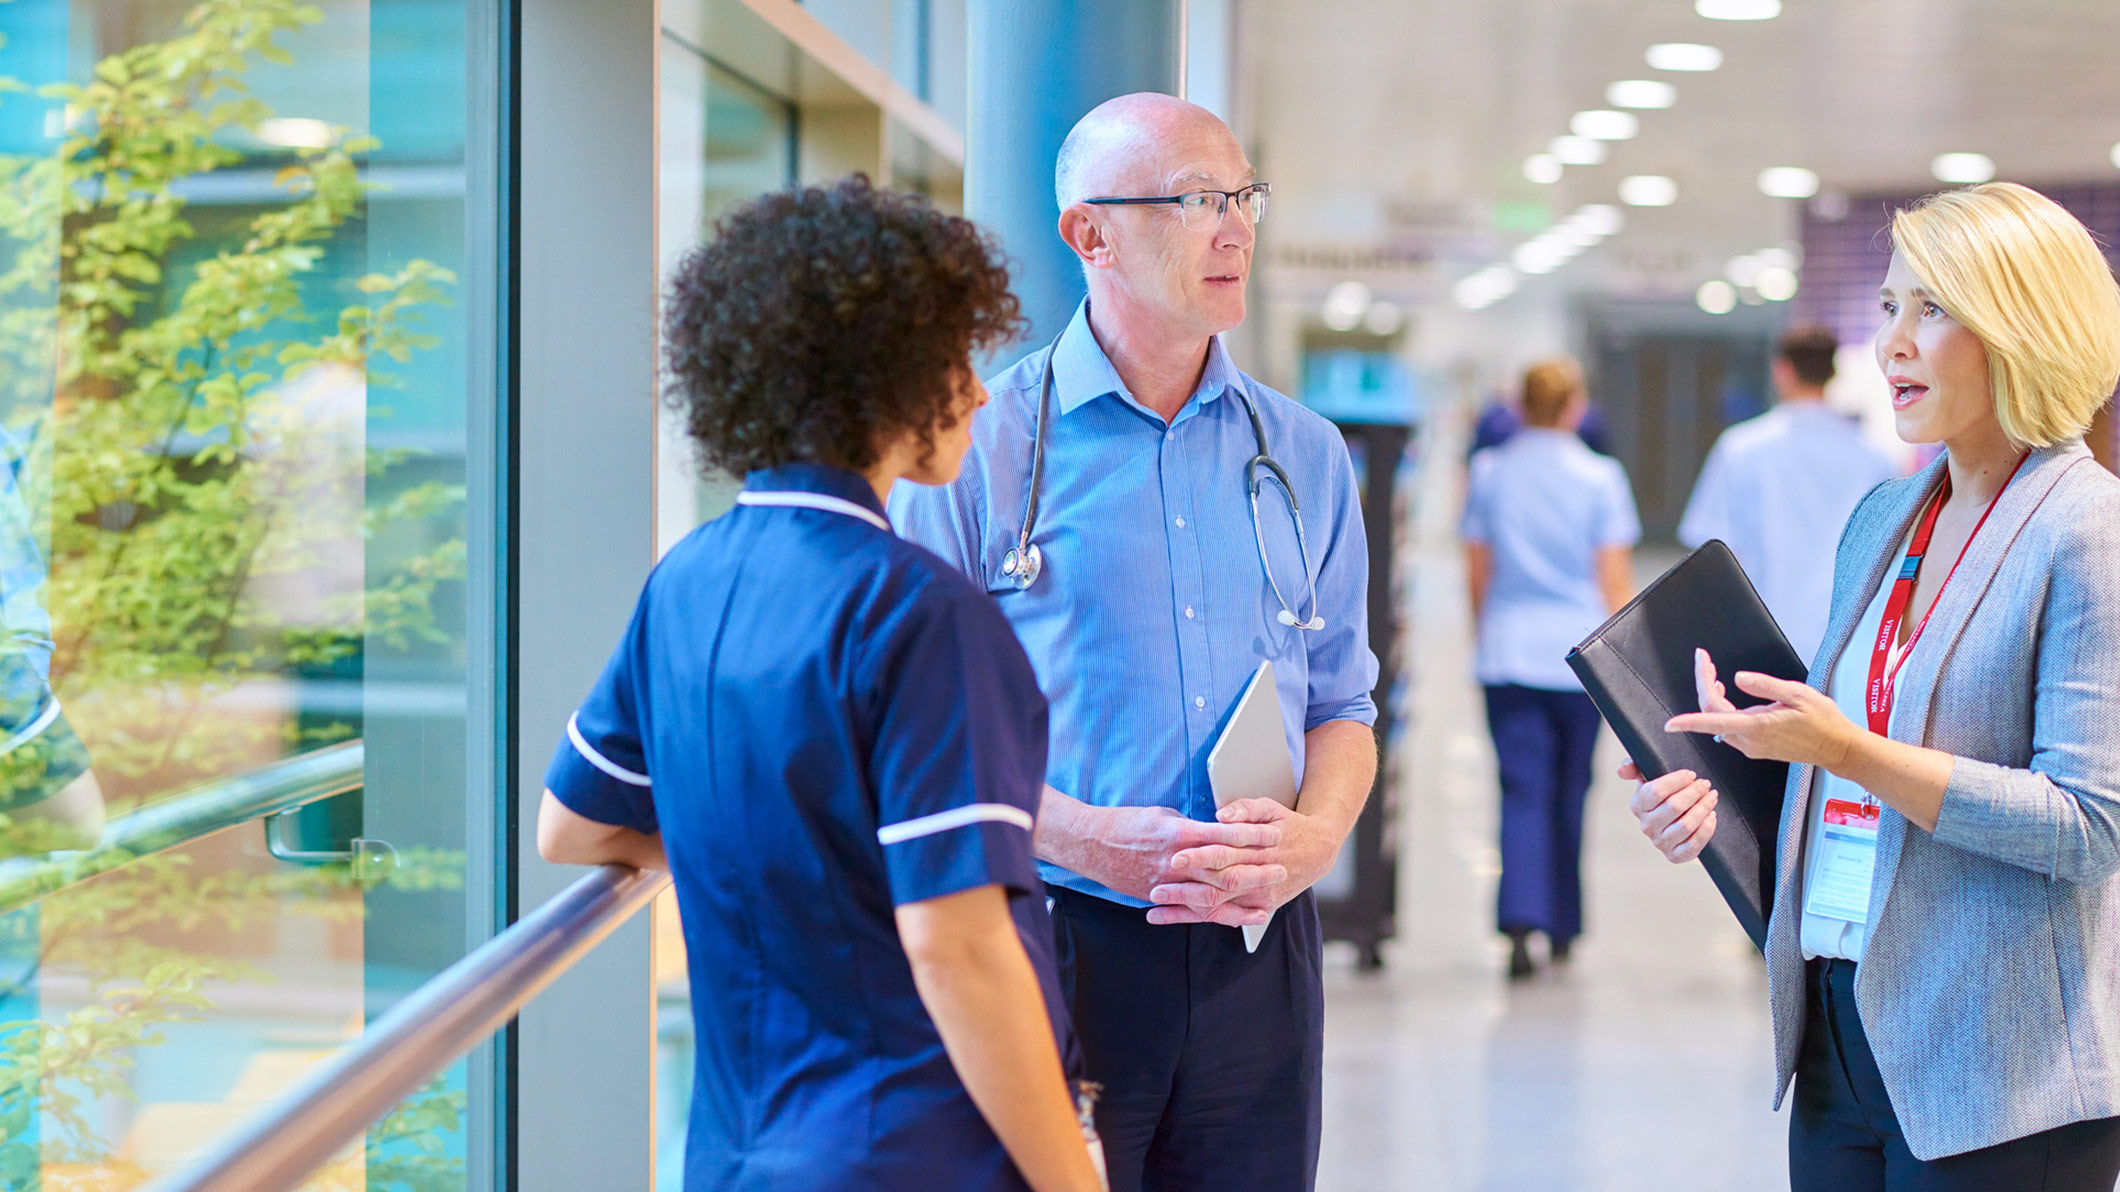 medical professionals talking in hospital corridor